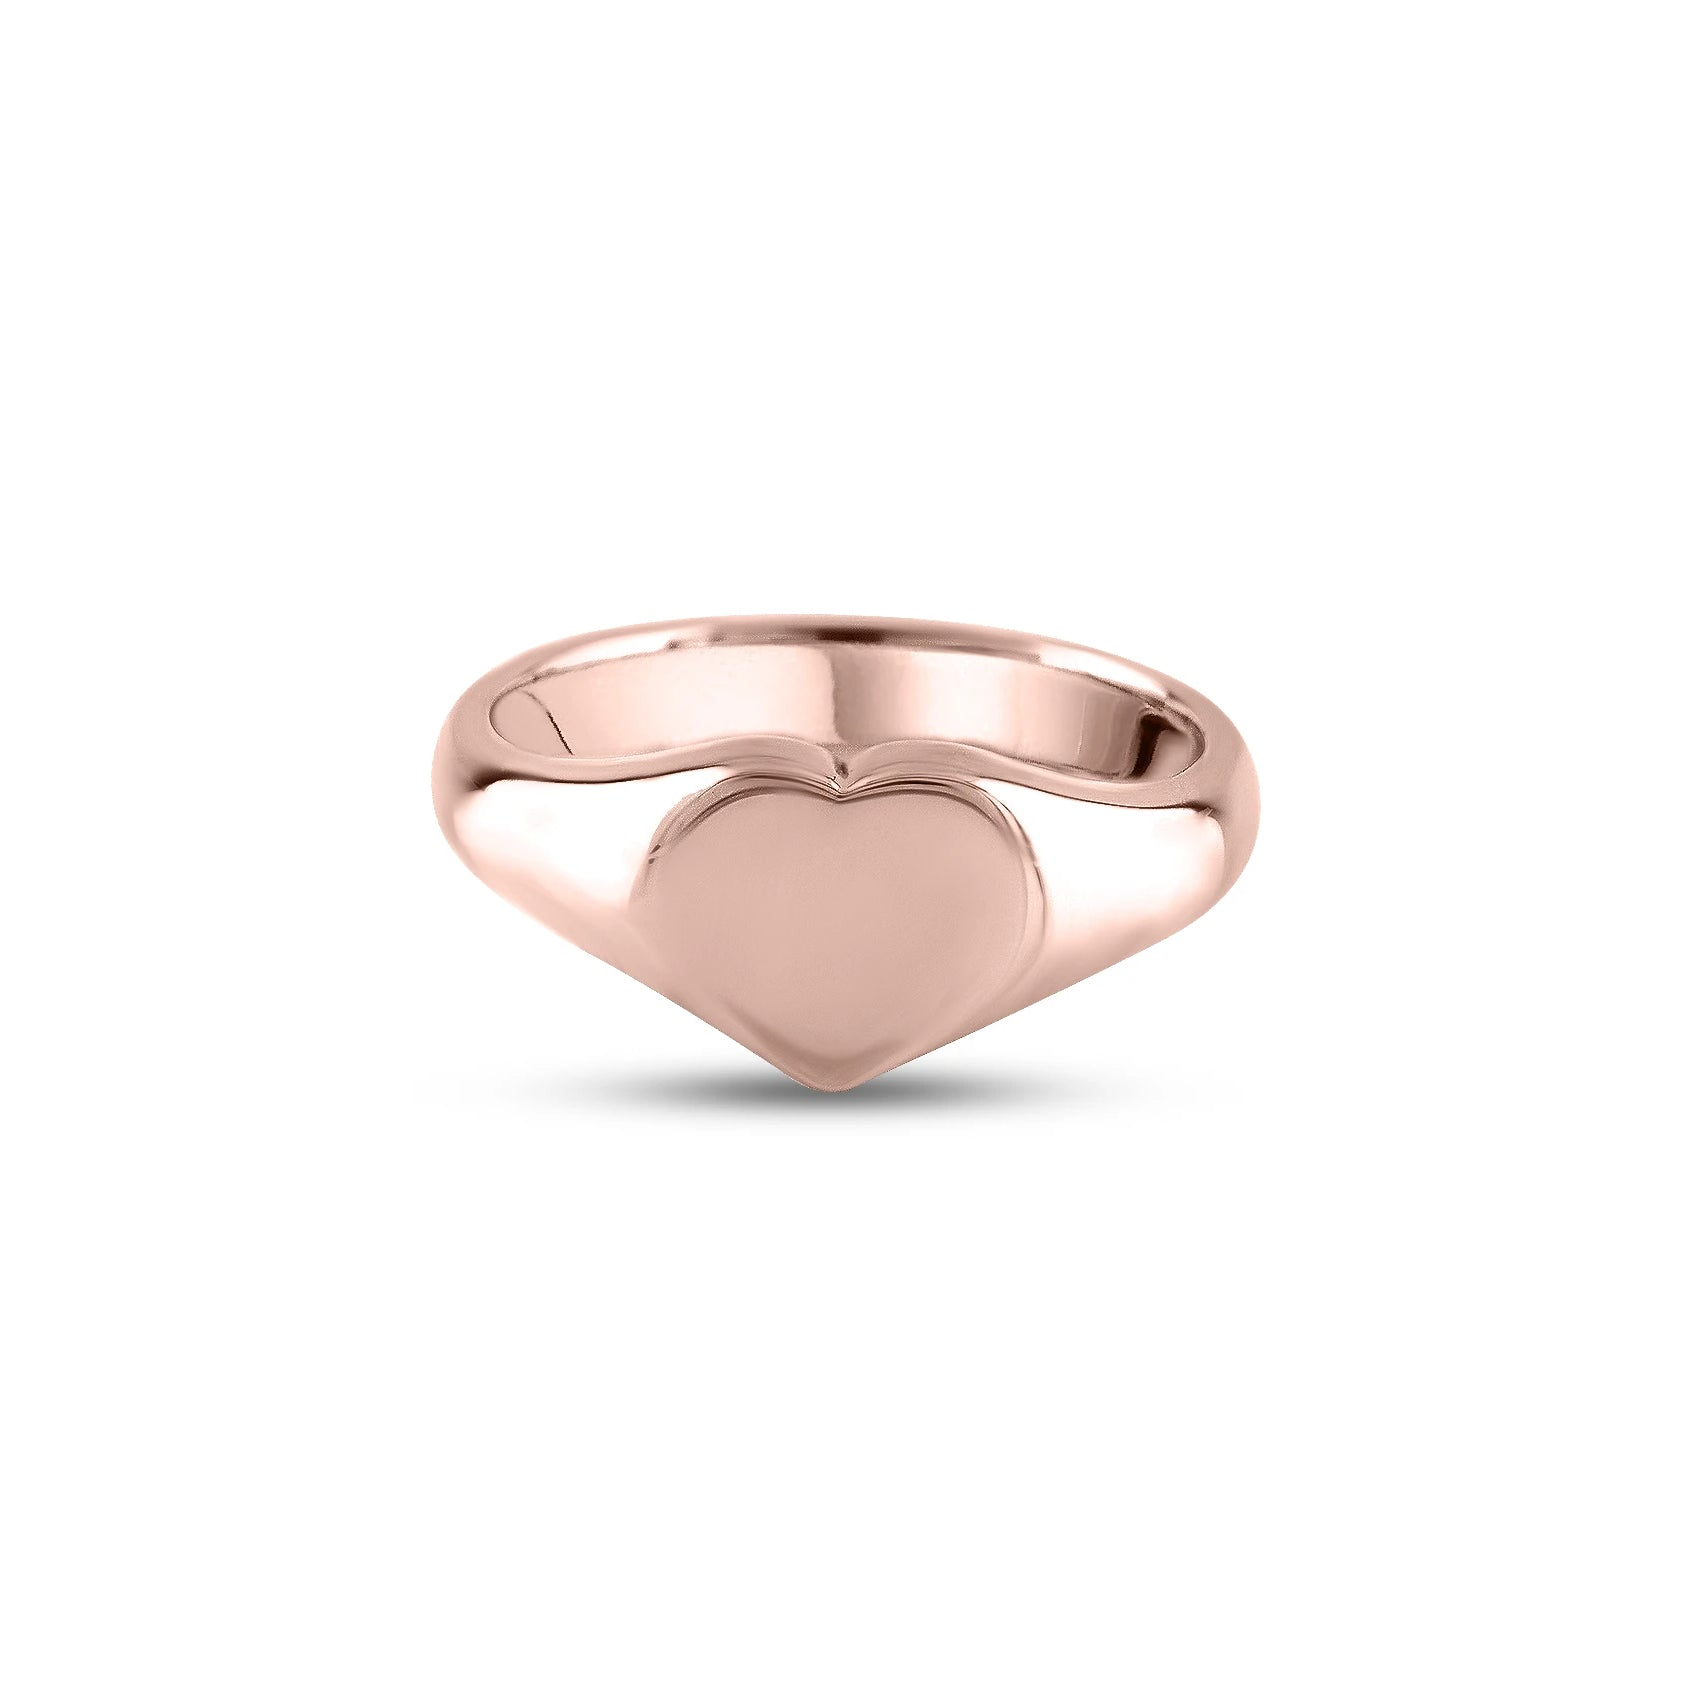 9ct Rose Gold 9 x 9mm Heart Signet Ring